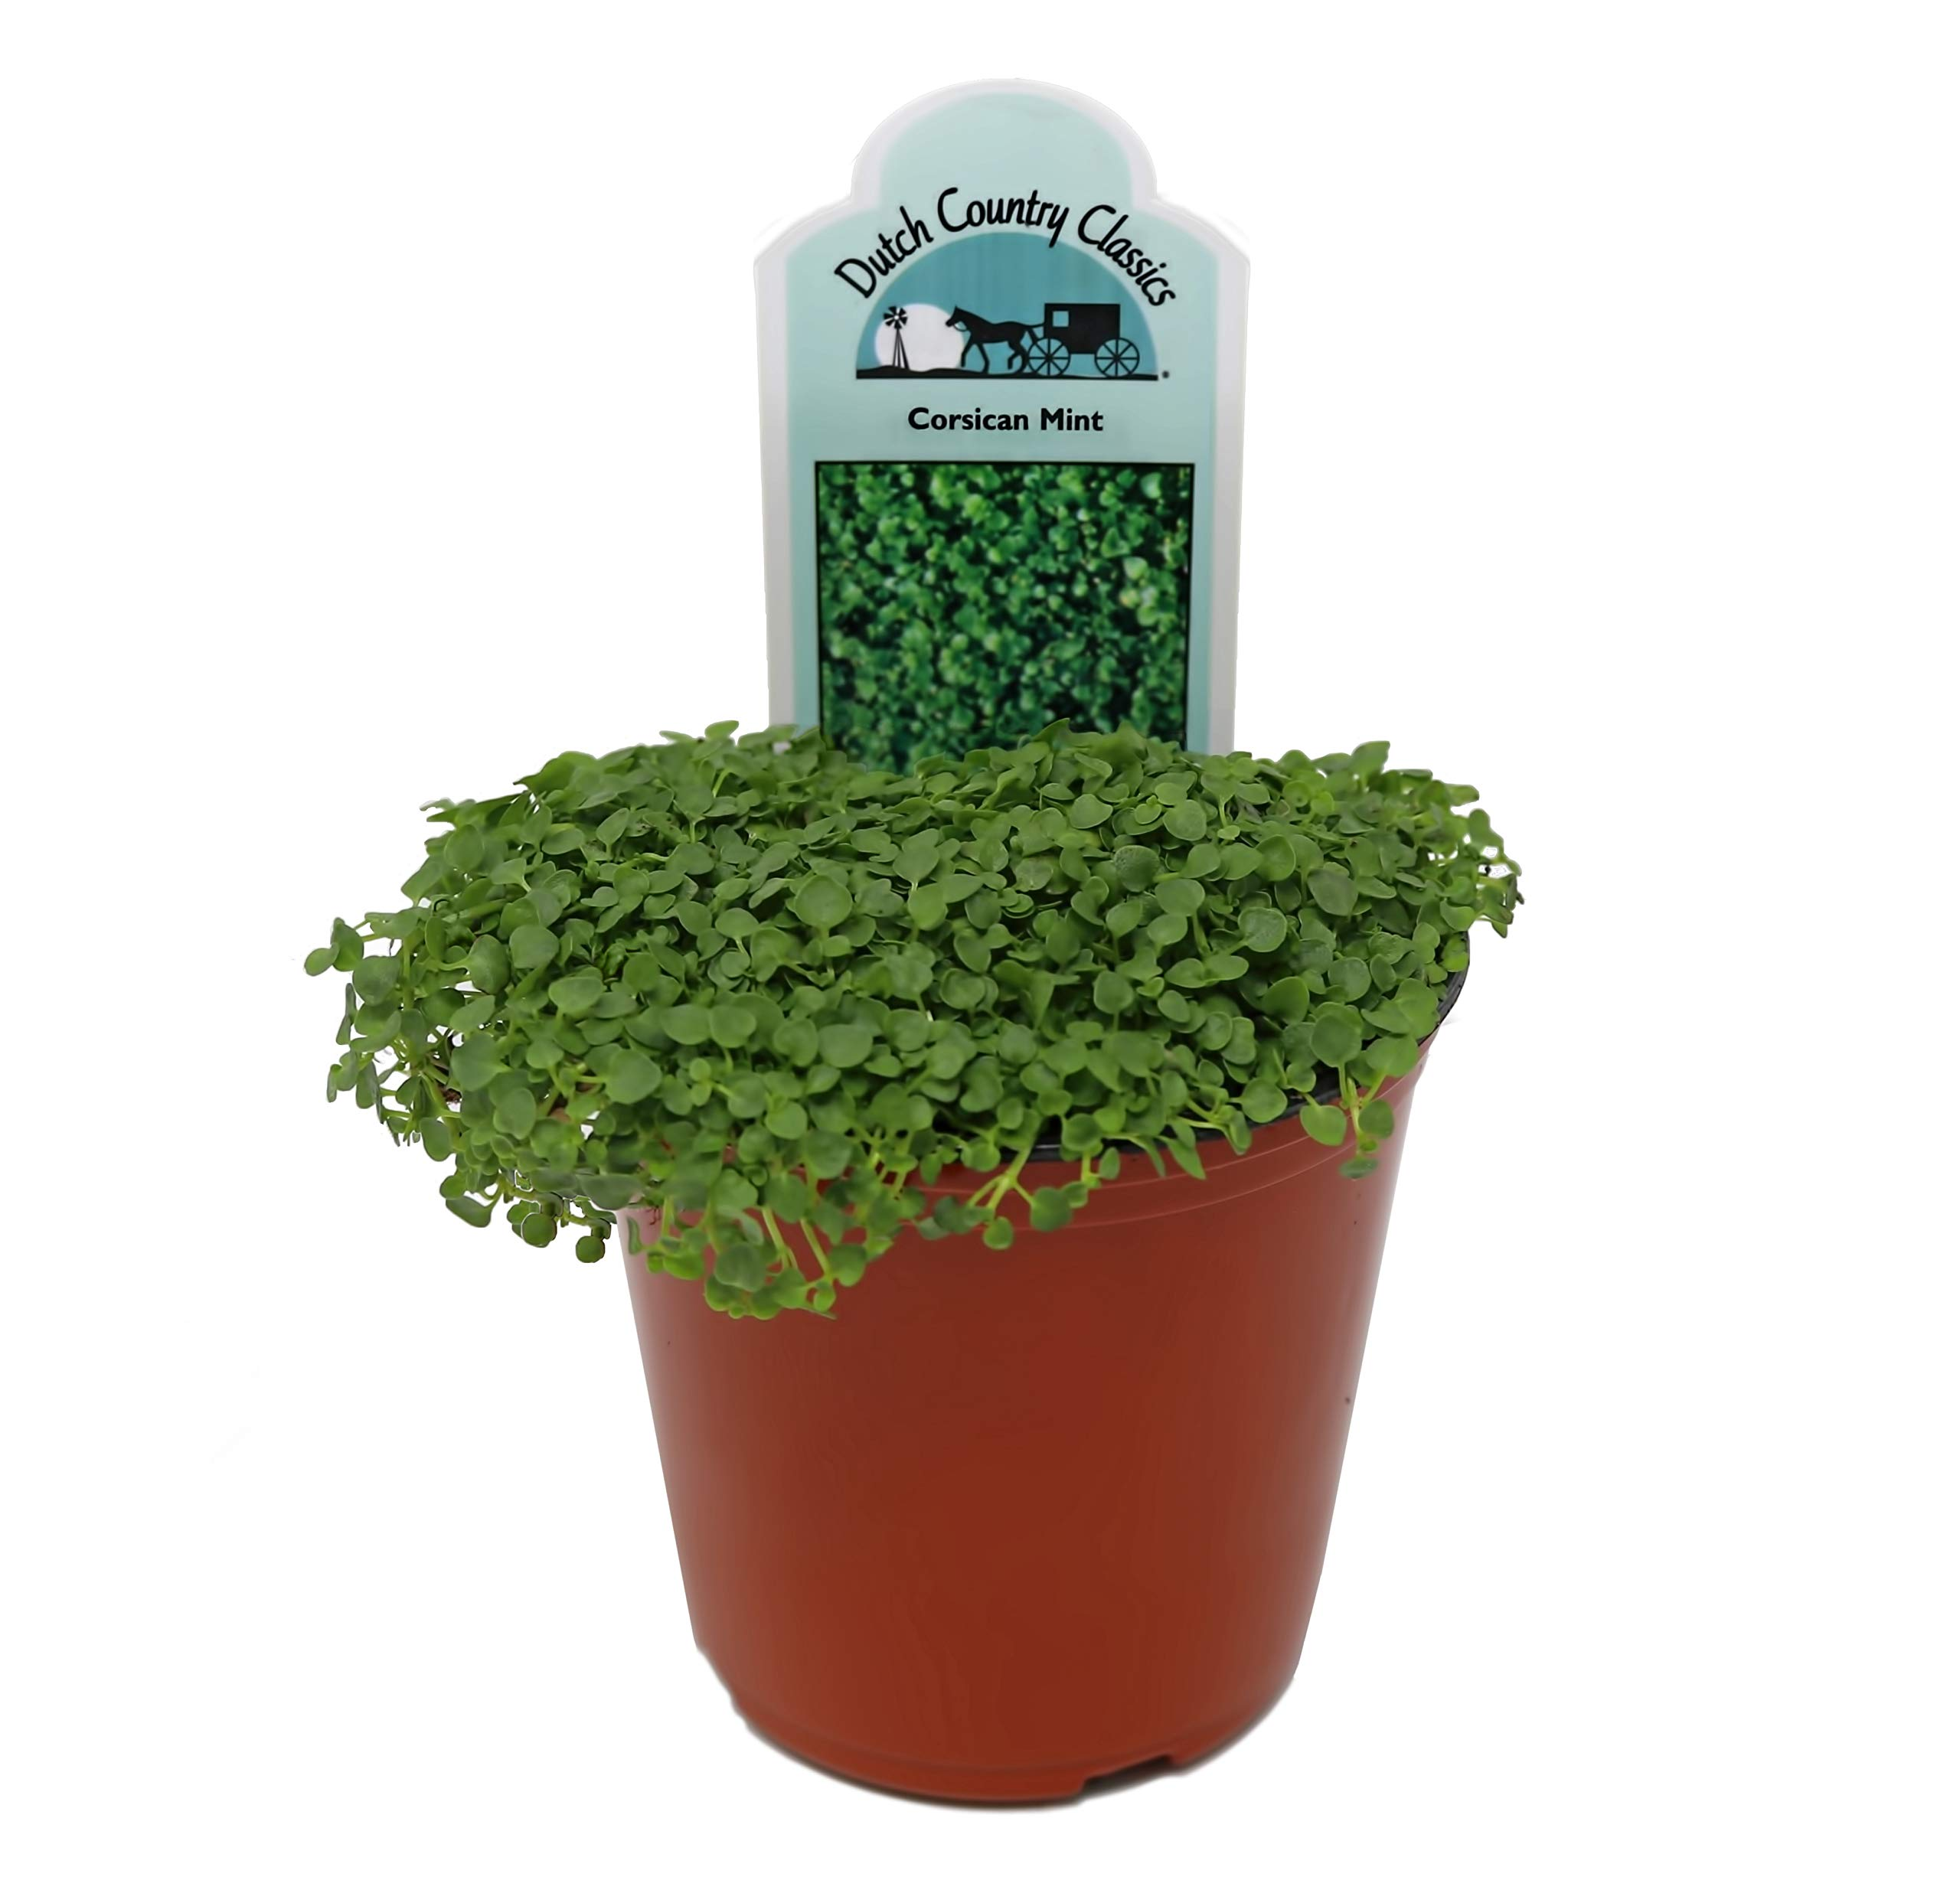 Mint 'Corsican' Herb Plant (Pack of 12) by Dutch Country Classics (Image #1)